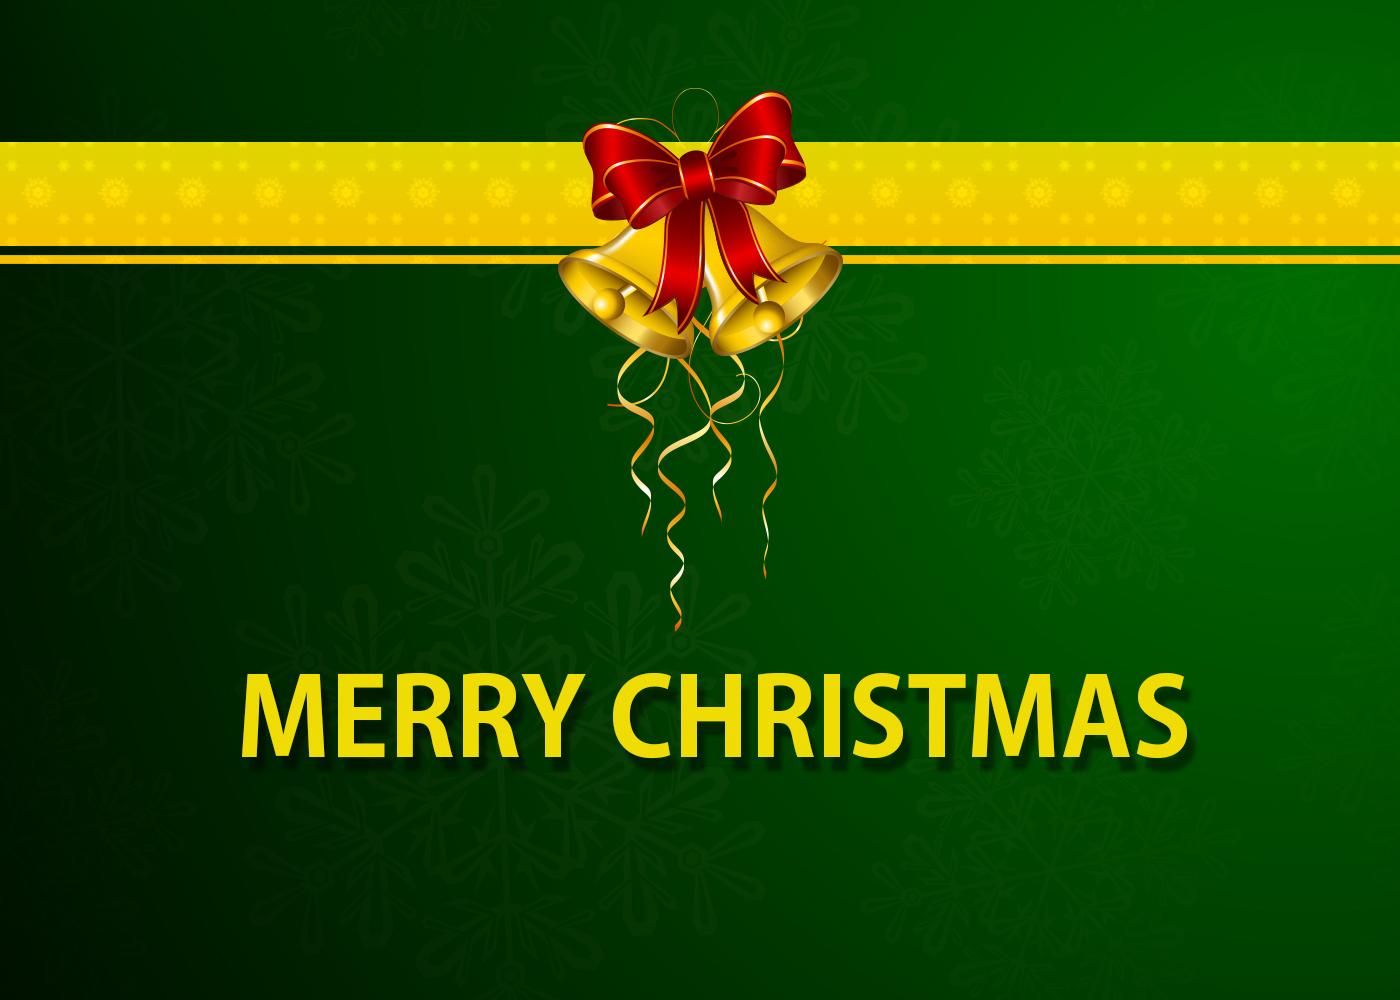 Free Merry Christmas Wallpapers And Desktop Background